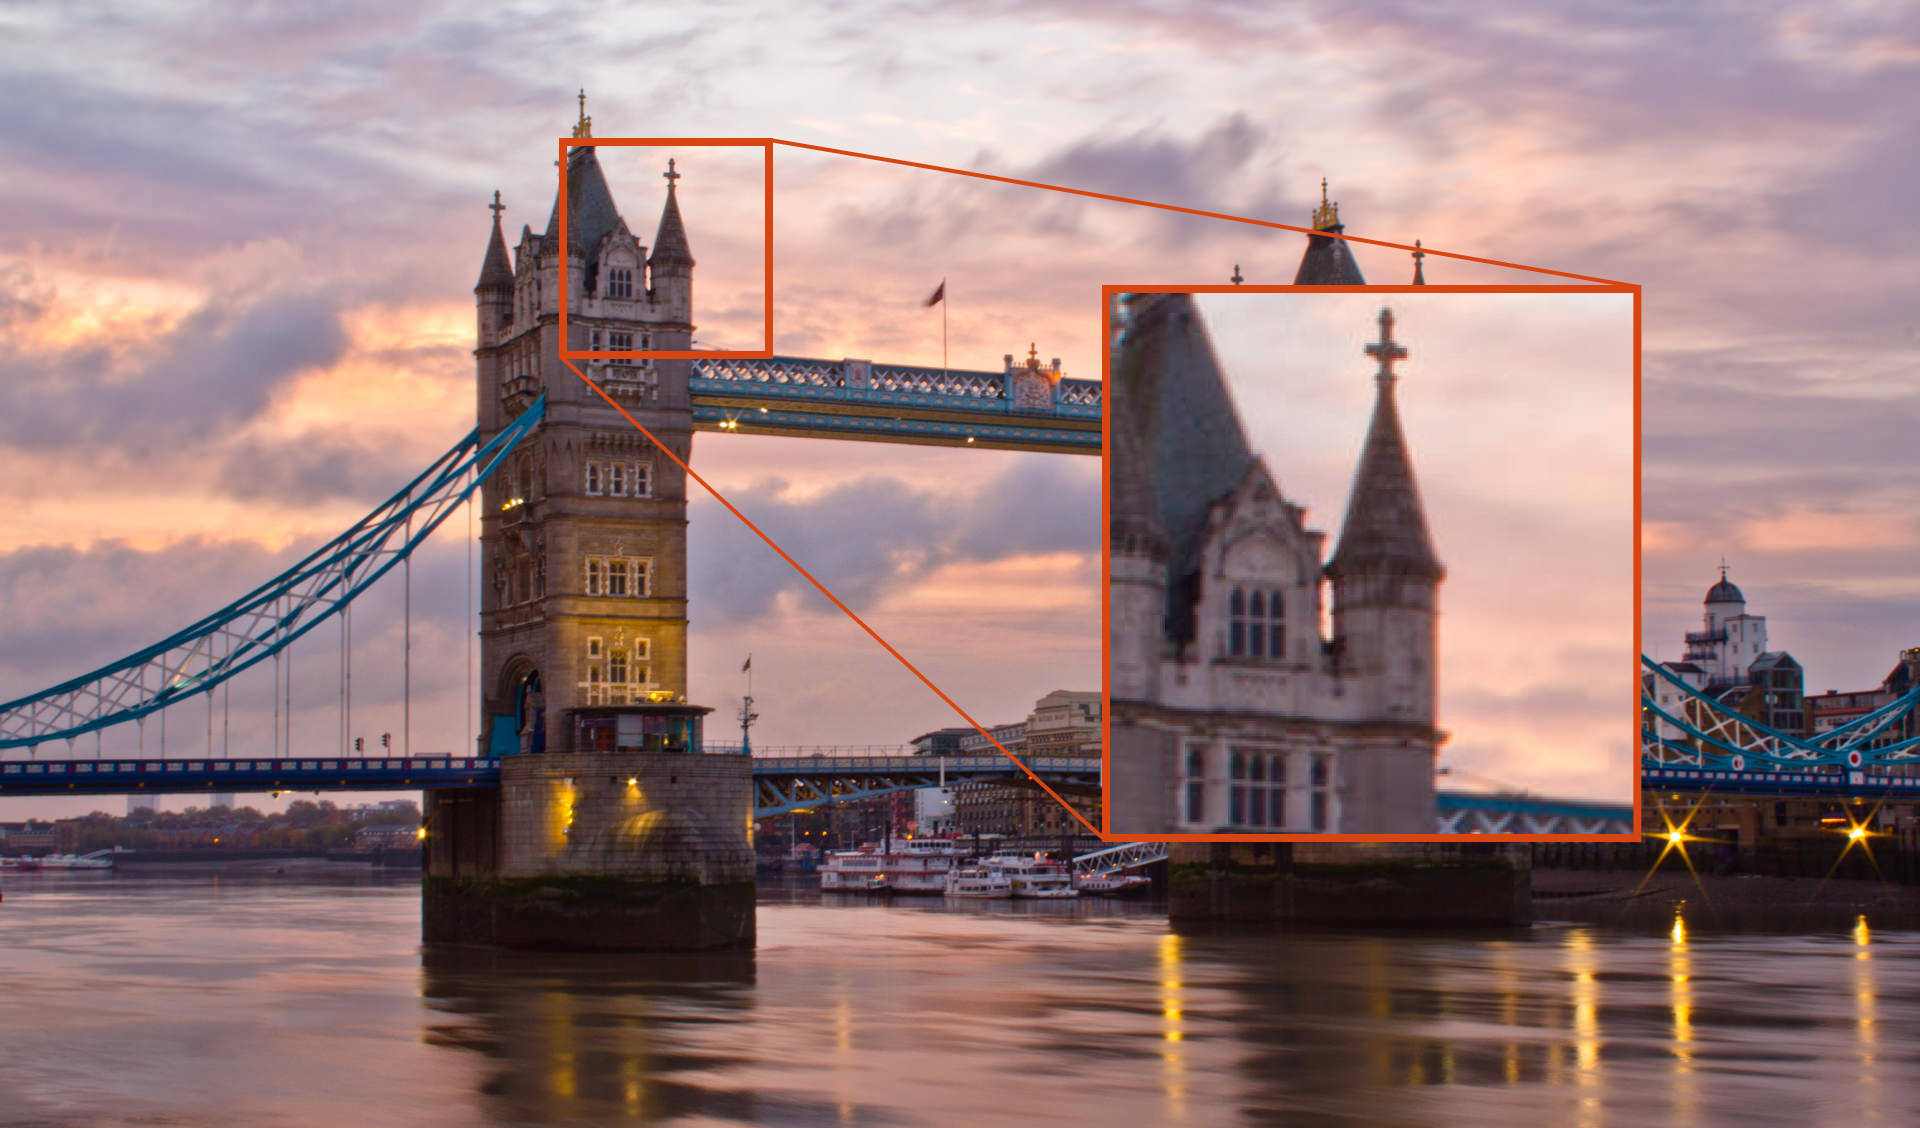 A blurred view of tower bridge caused by diffraction